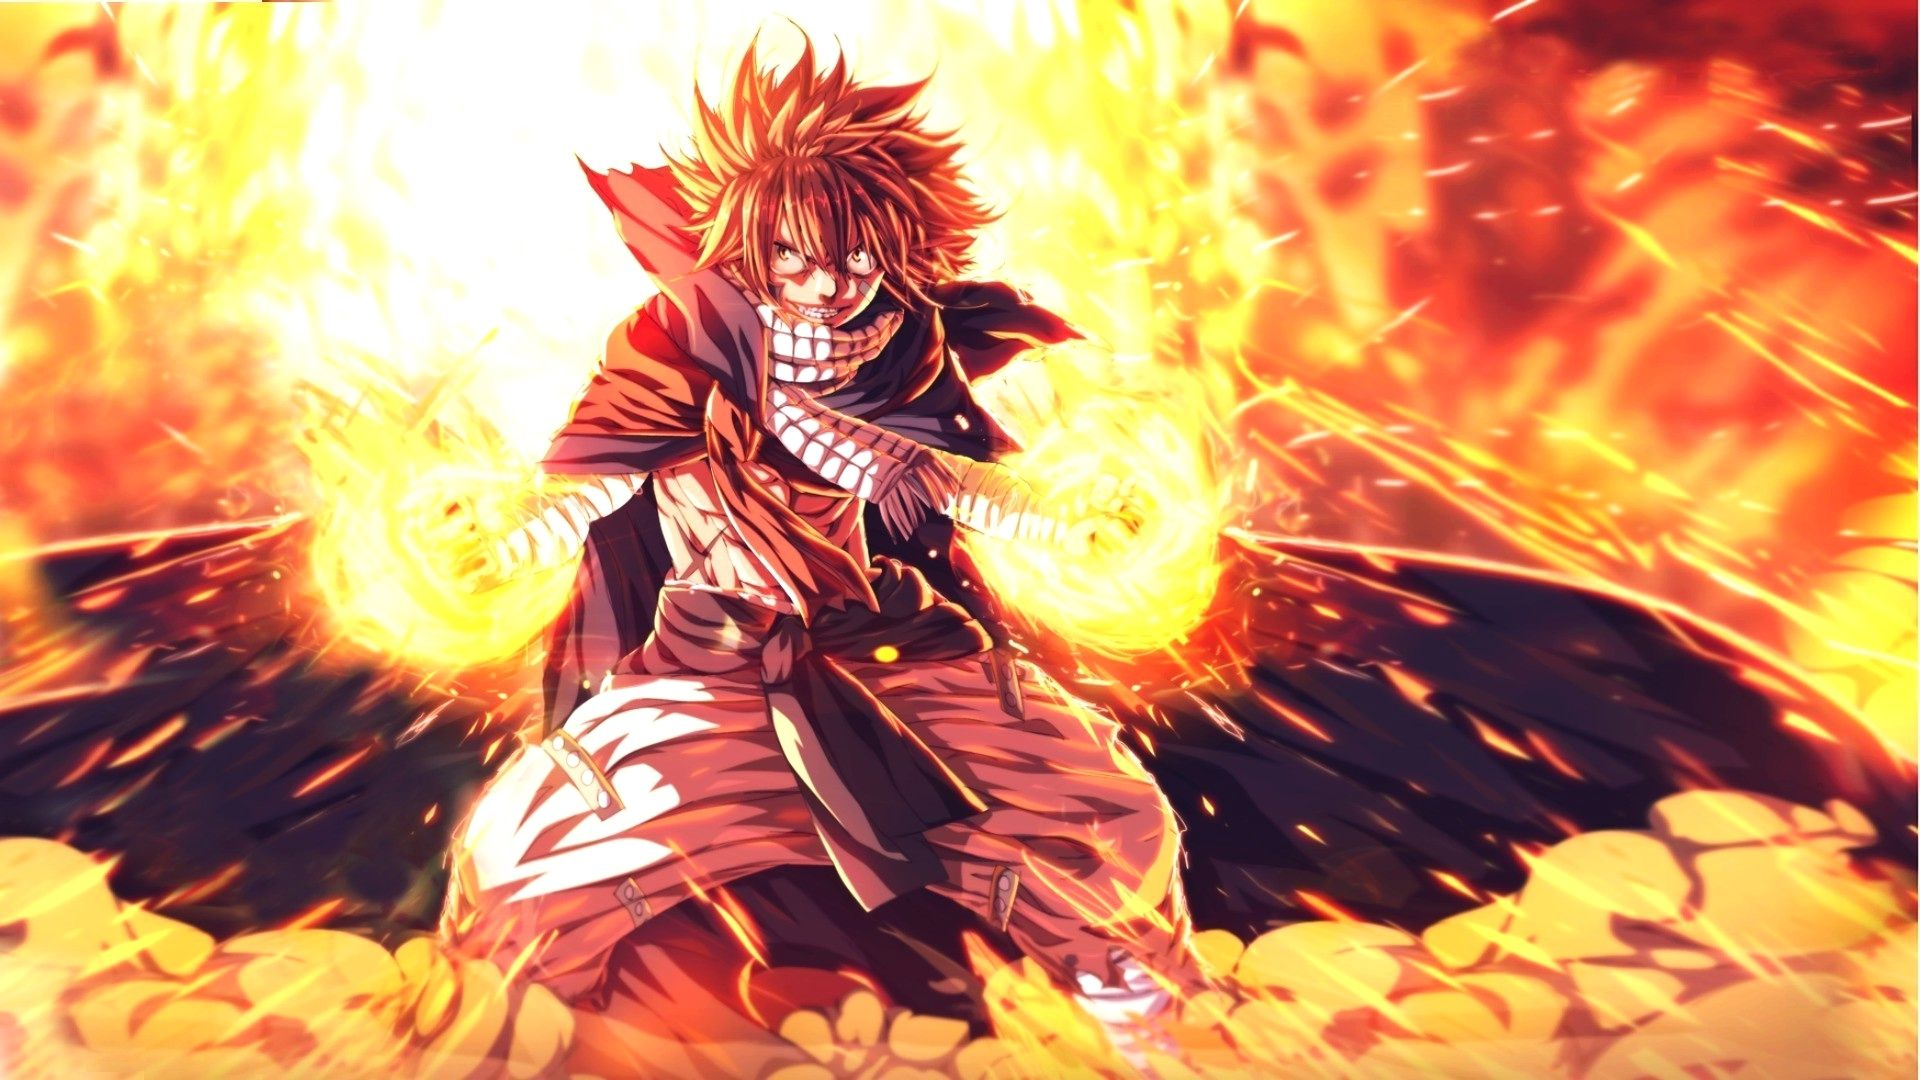 Fairy Tail Wallpaper 4k Pc Trick Di 2020